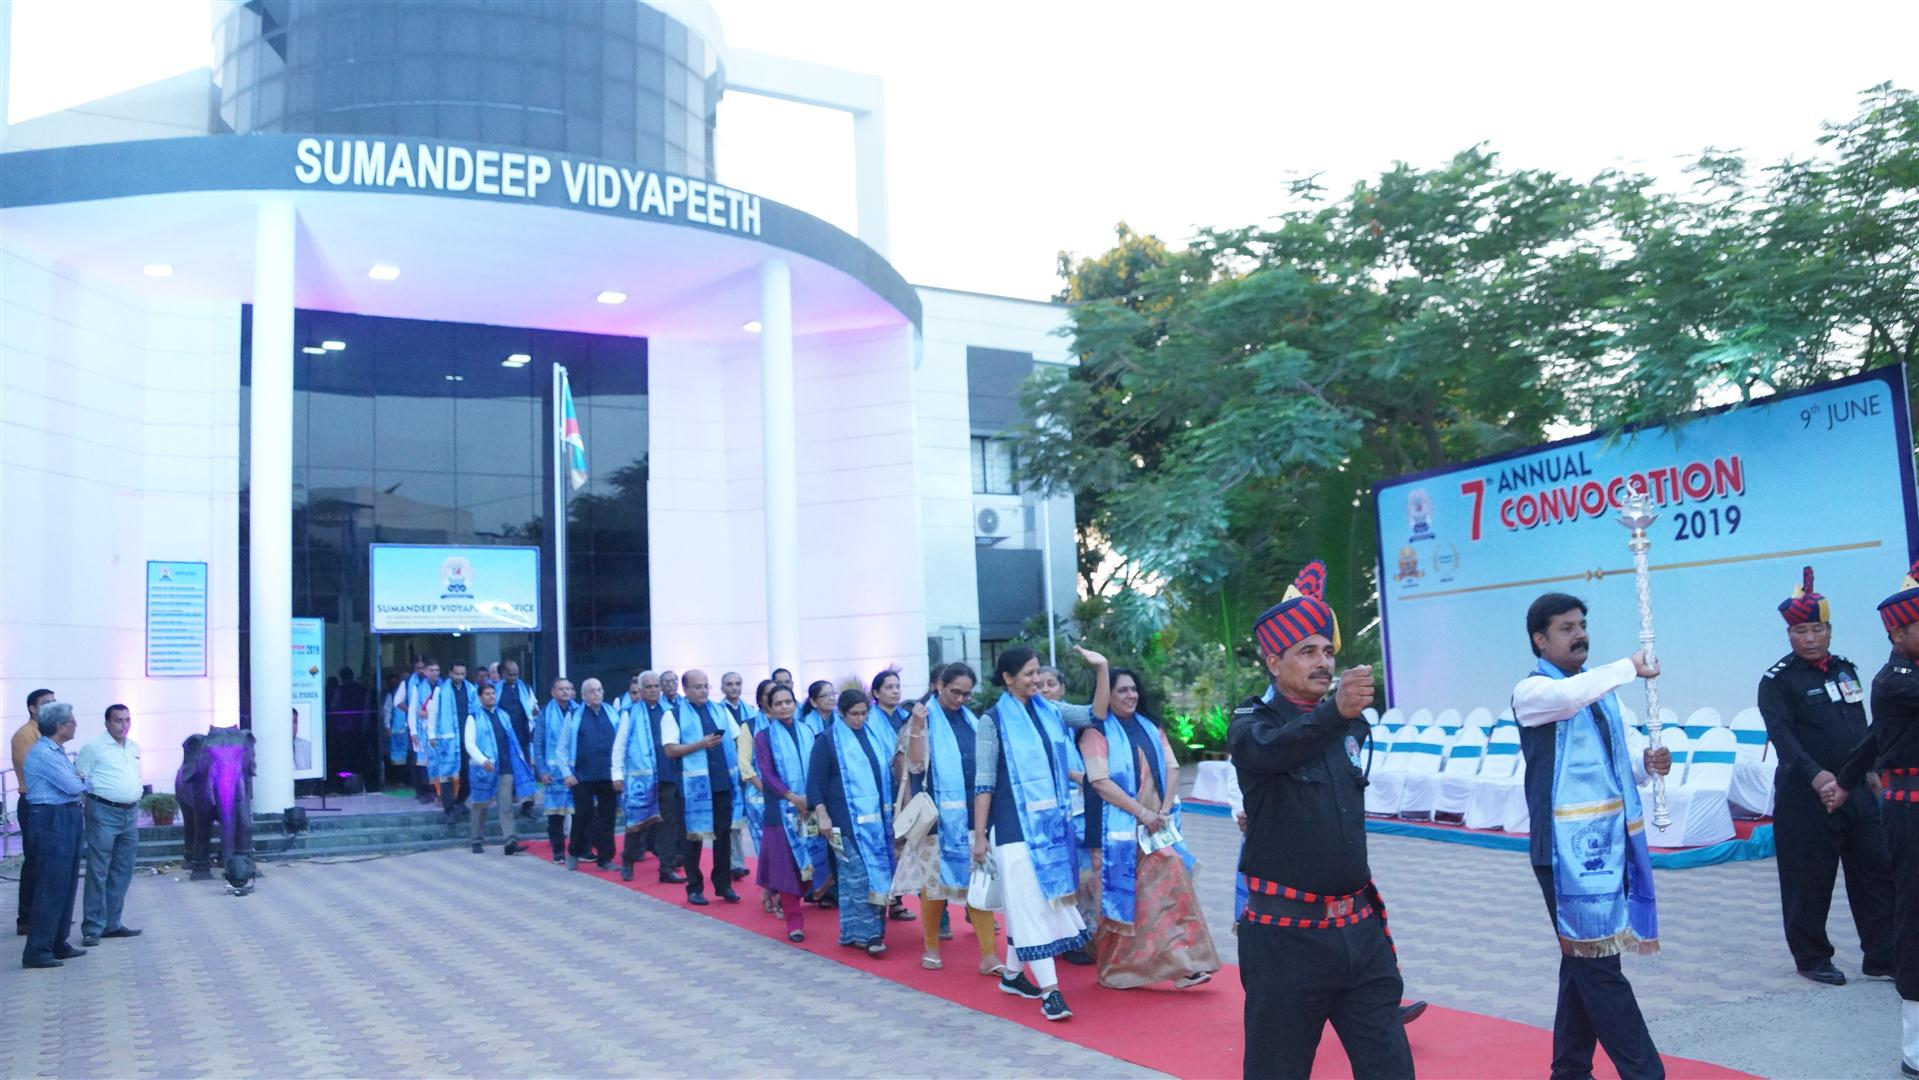 The trustees of the deemed university, namely, 'Sumandeep Vidyapeeth' were sued on allegations under the Prevention of Corruption Act.